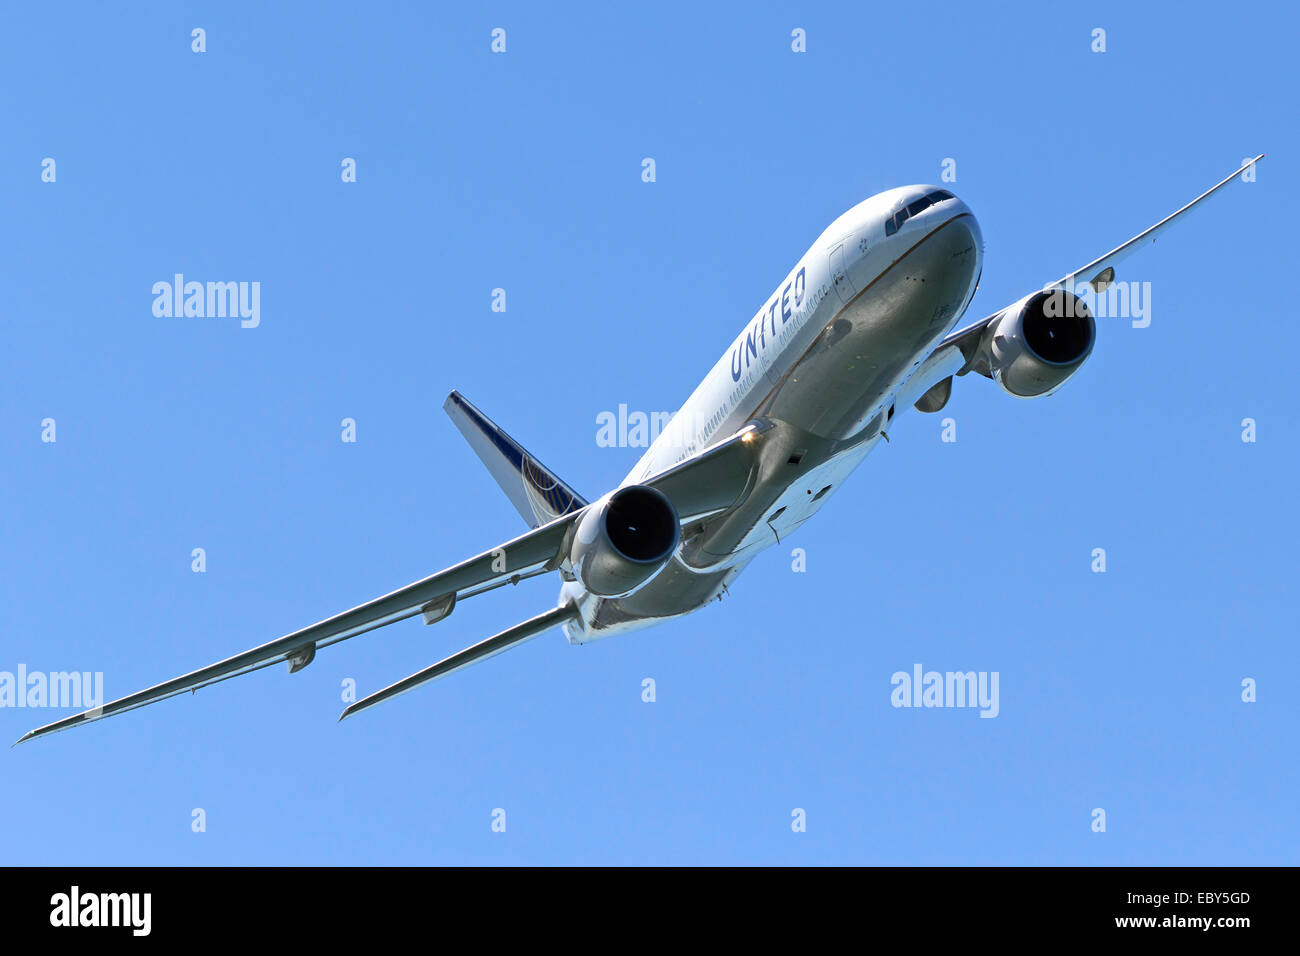 Boeing Livery Stock Photos & Boeing Livery Stock Images - Alamy